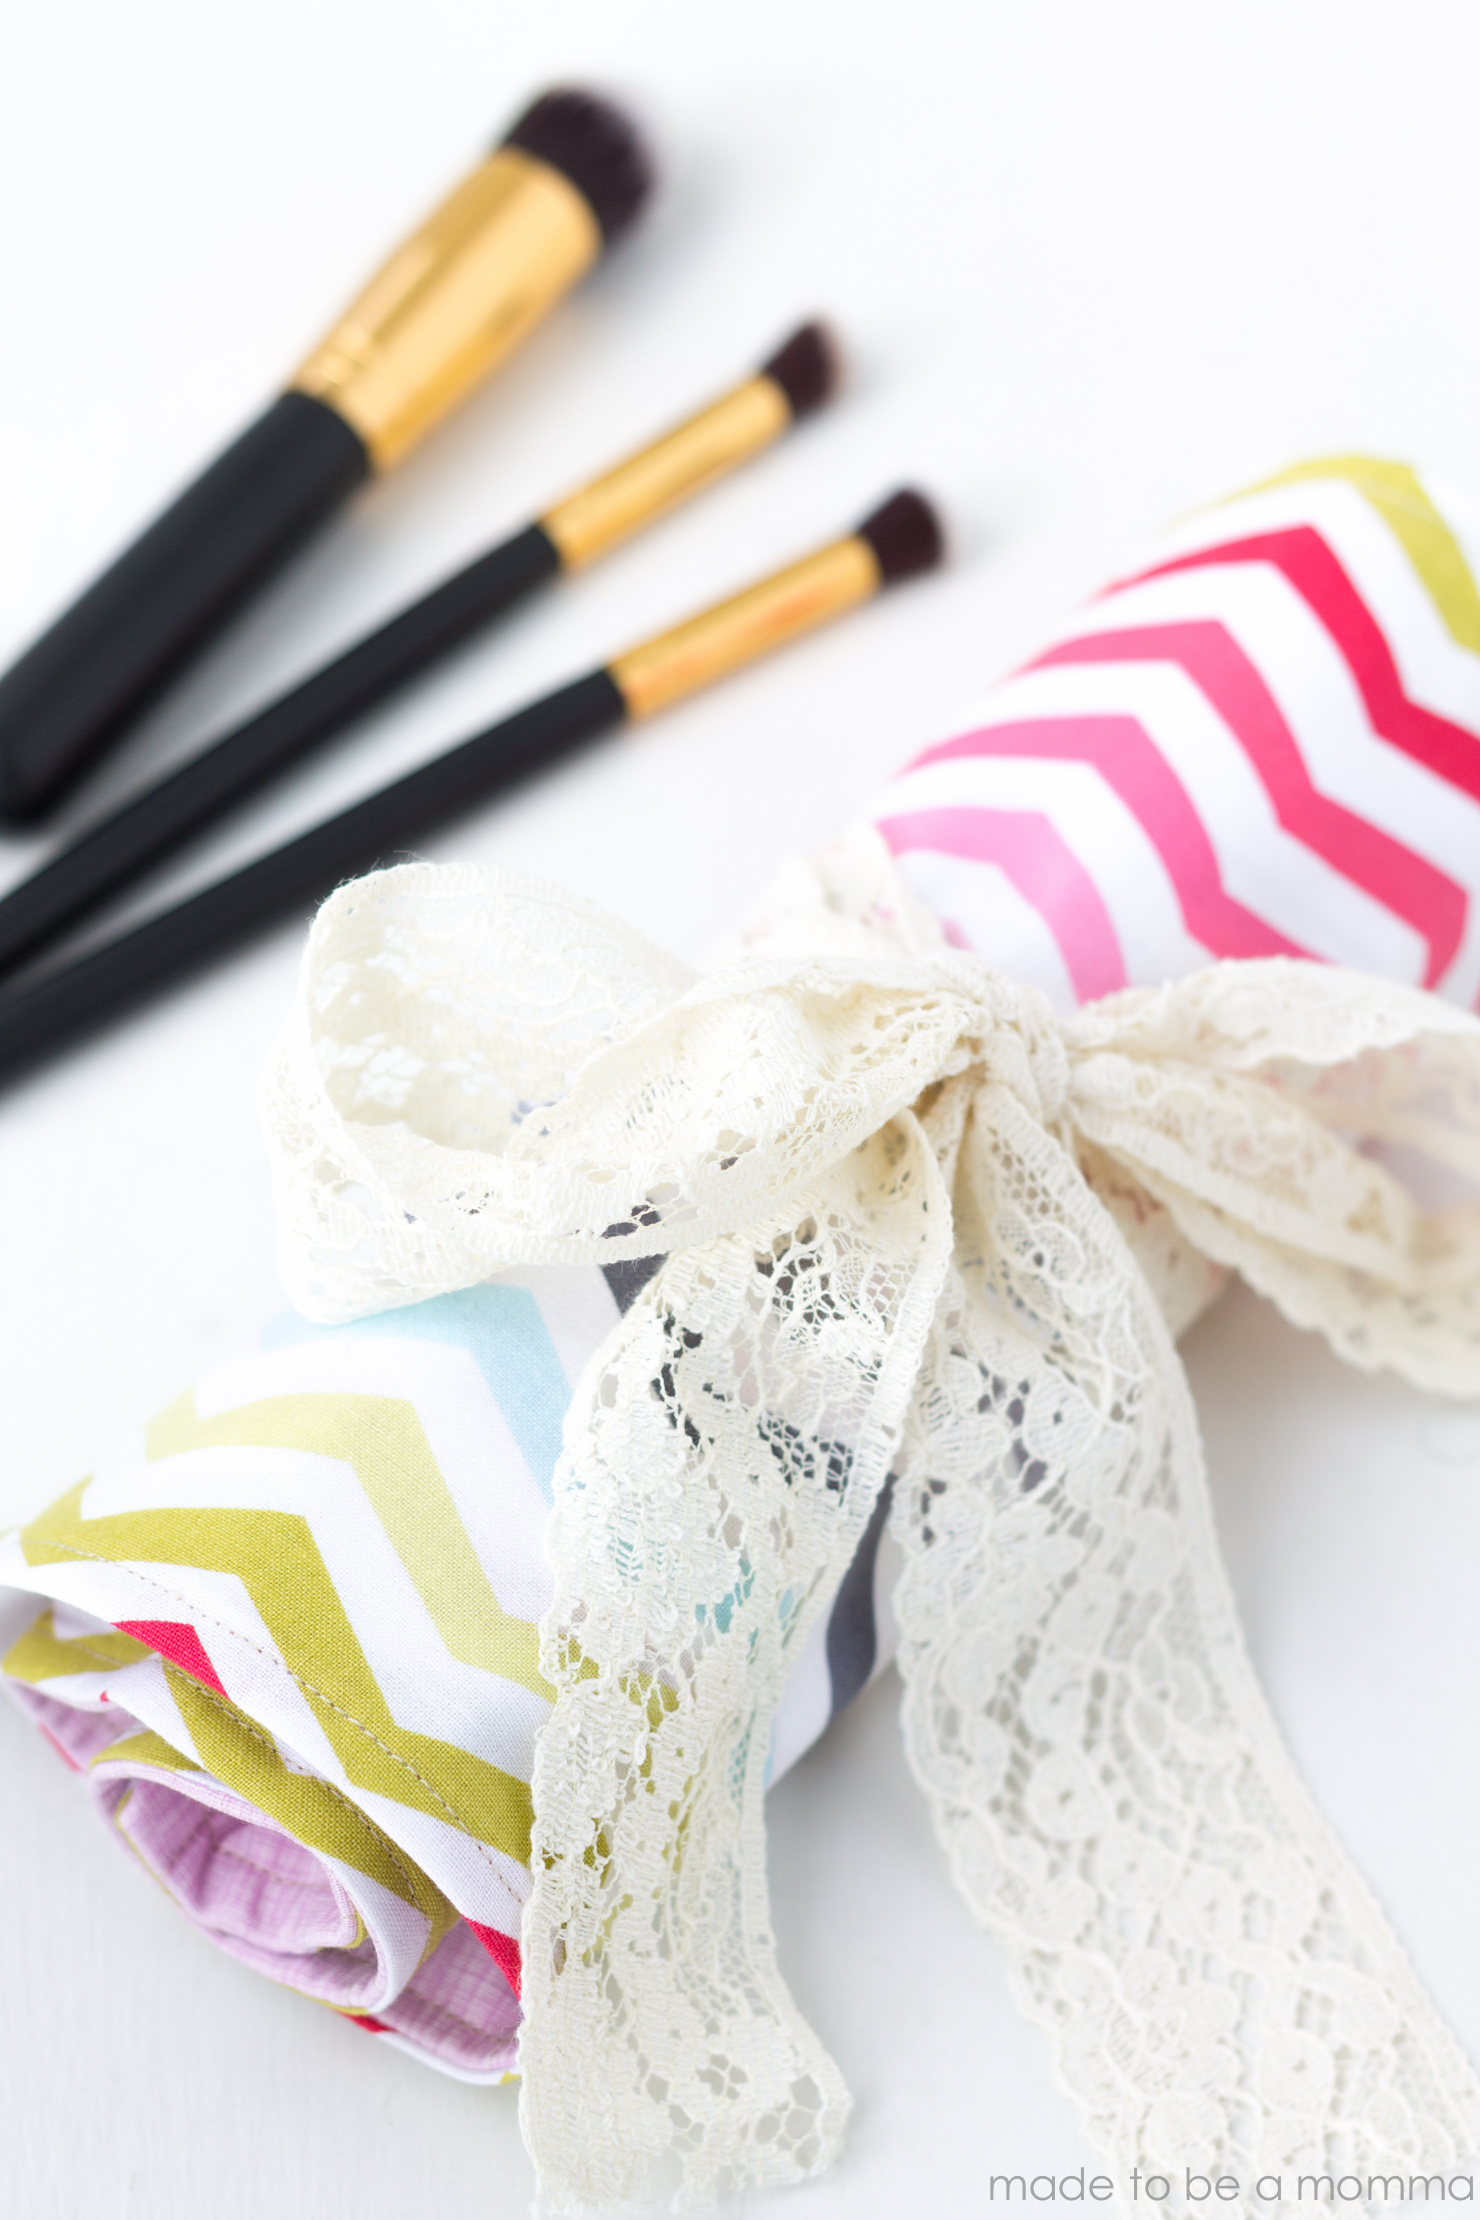 Makeup Brush Holder: perfect gift idea for any makeup lover! Tutorial at madetobeamomma.com